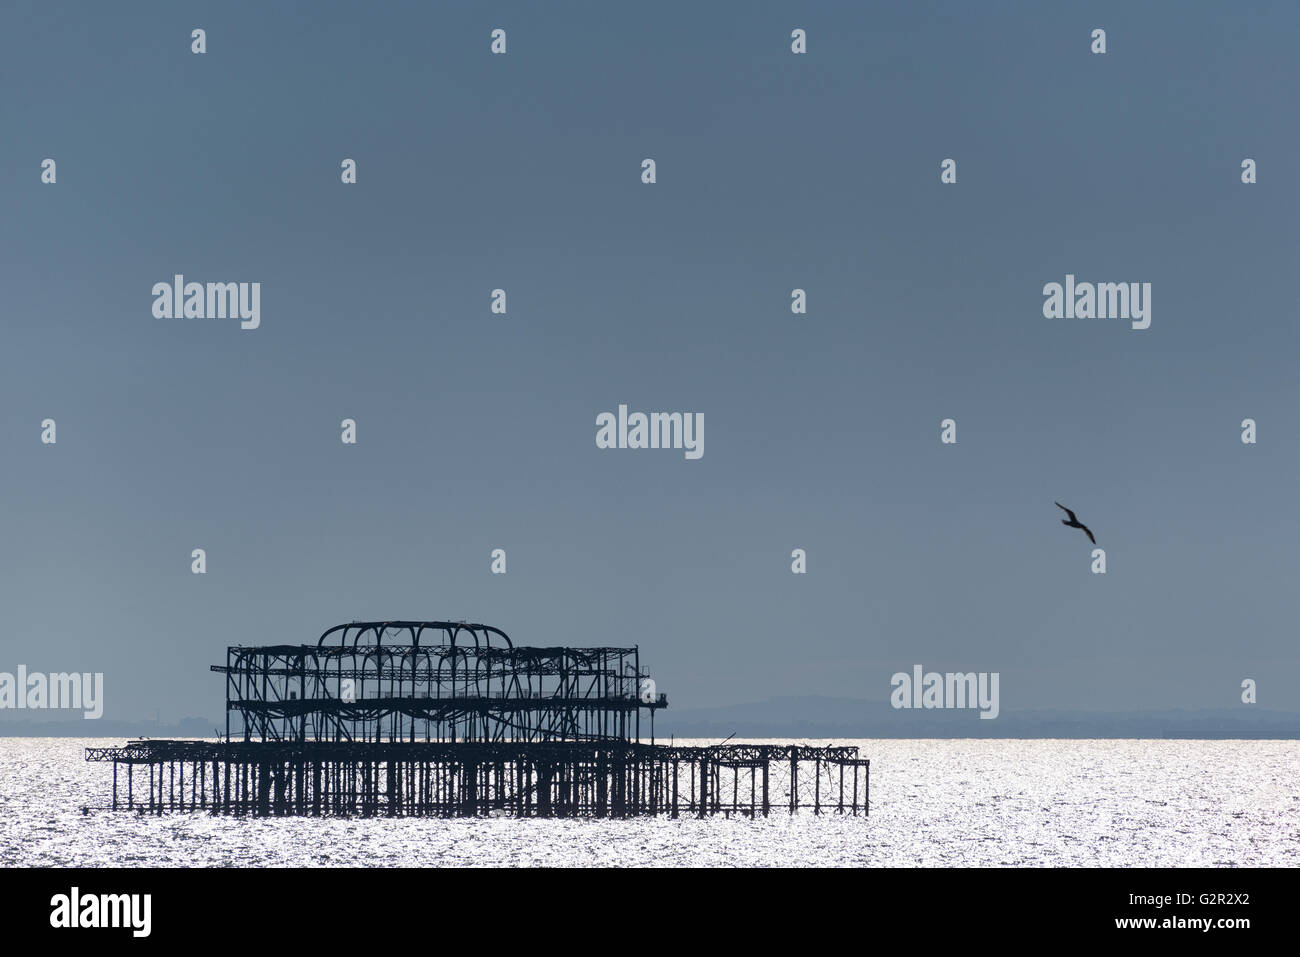 Silhouette of the West Pier - Stock Image